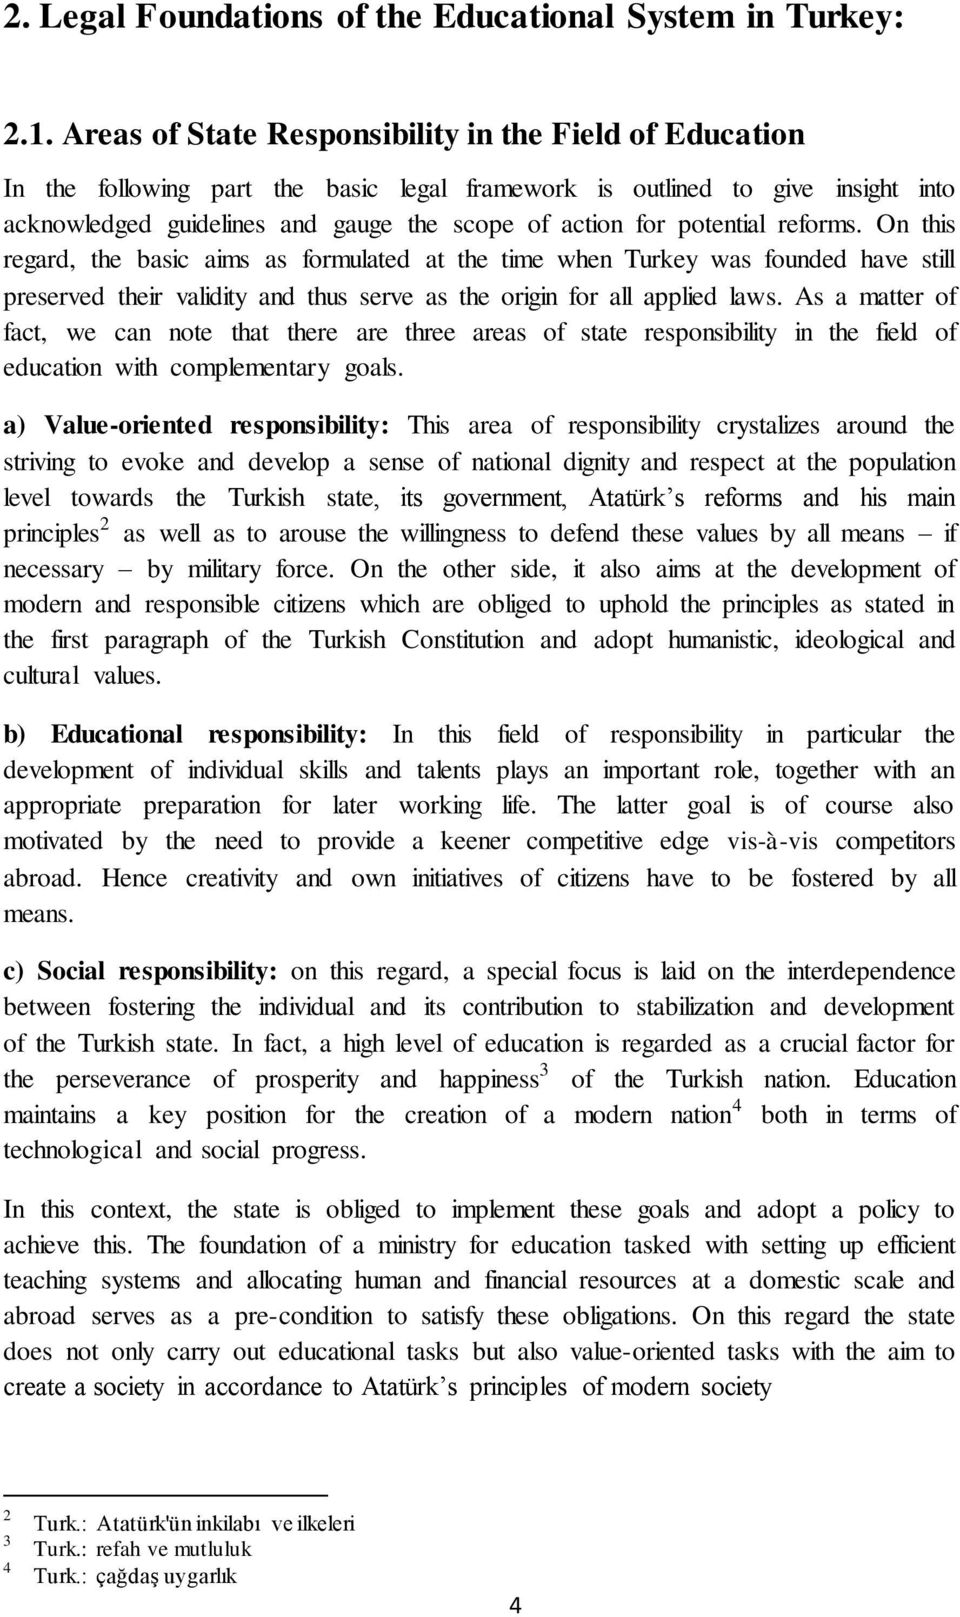 potential reforms. On this regard, the basic aims as formulated at the time when Turkey was founded have still preserved their validity and thus serve as the origin for all applied laws.